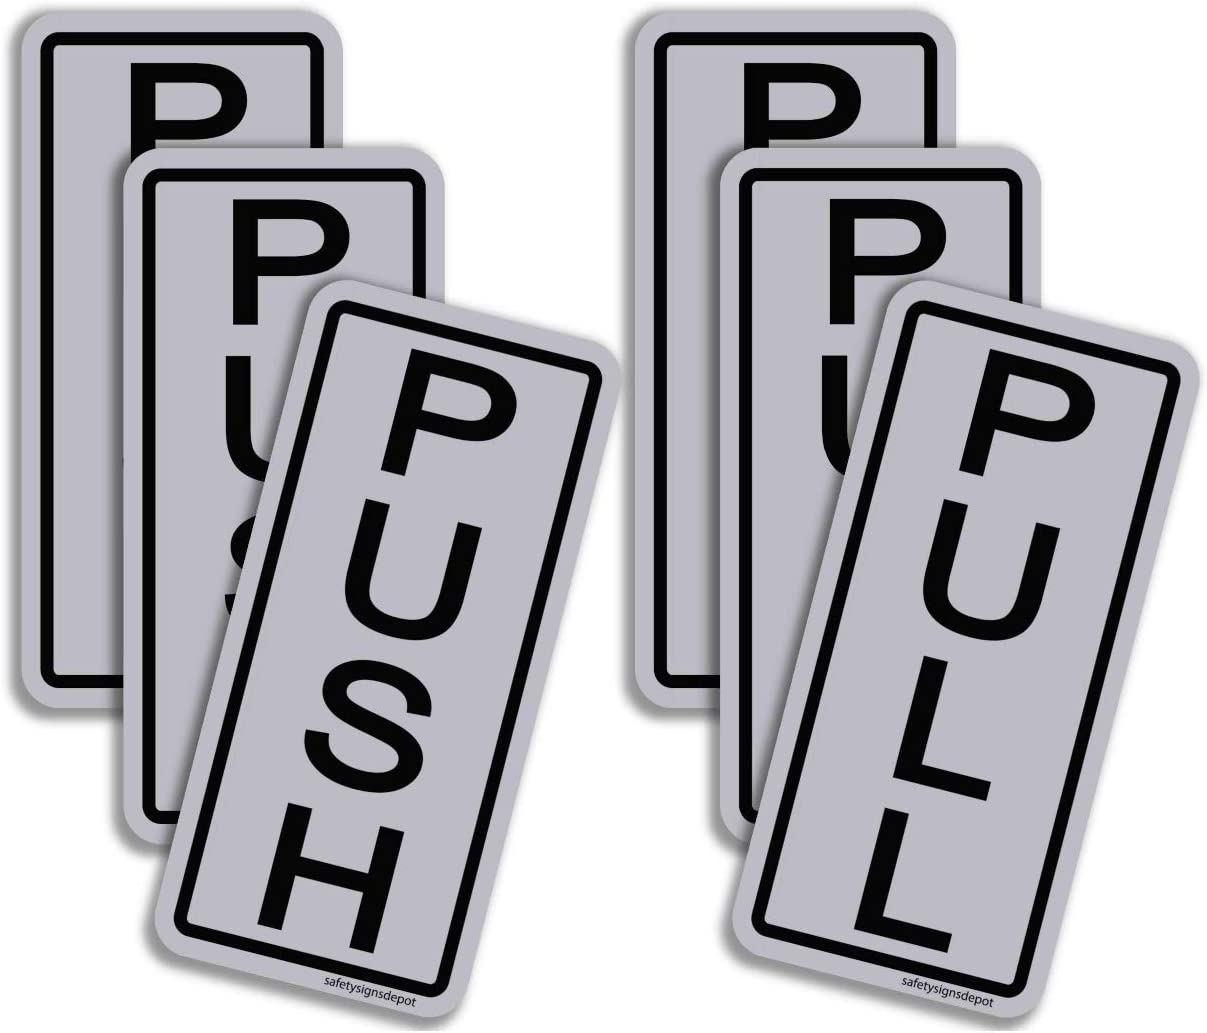 Store and Office Push Pull Door Sticker Signs Vertical 2 x 5 Pack of 3 3 Adhesive Vinyl Decals UV Laminated for Business